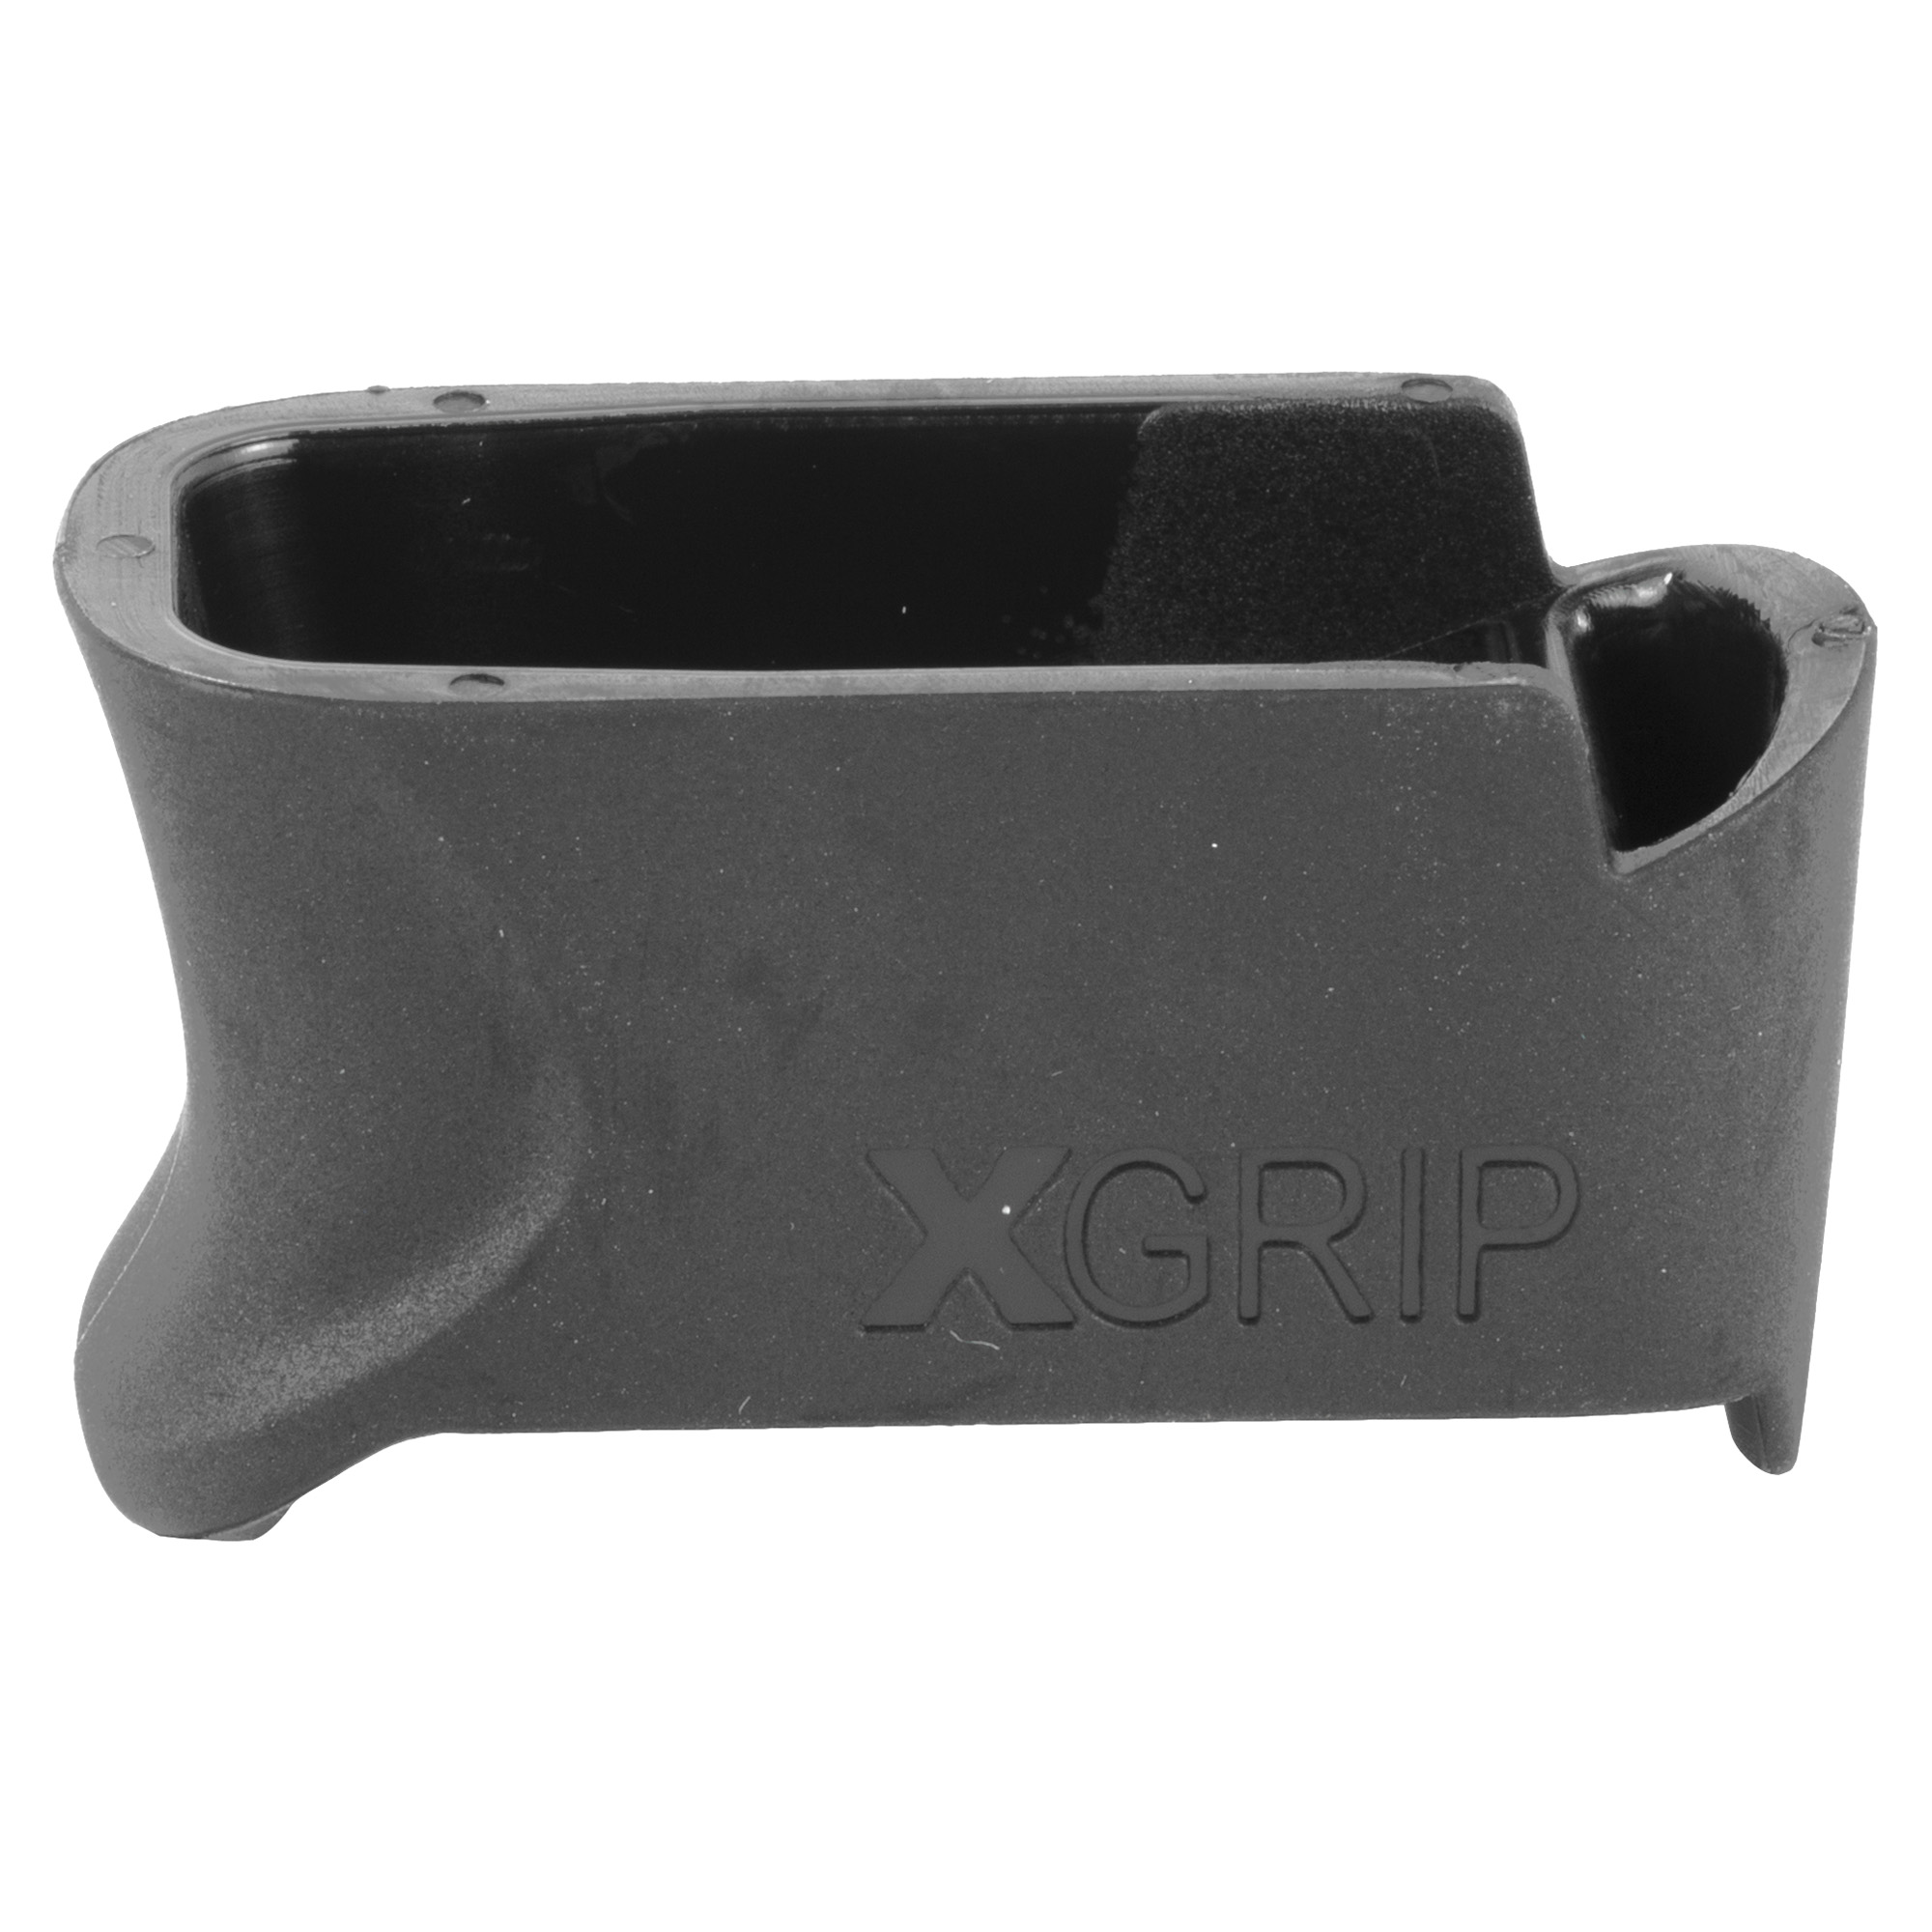 """The XGGL43-9 XGRIP adapts the ETS 9 round 9MM magazines for use in the G43 pistols"""" incorporating the larger magazine into the grip and increasing the gun's capacity."""